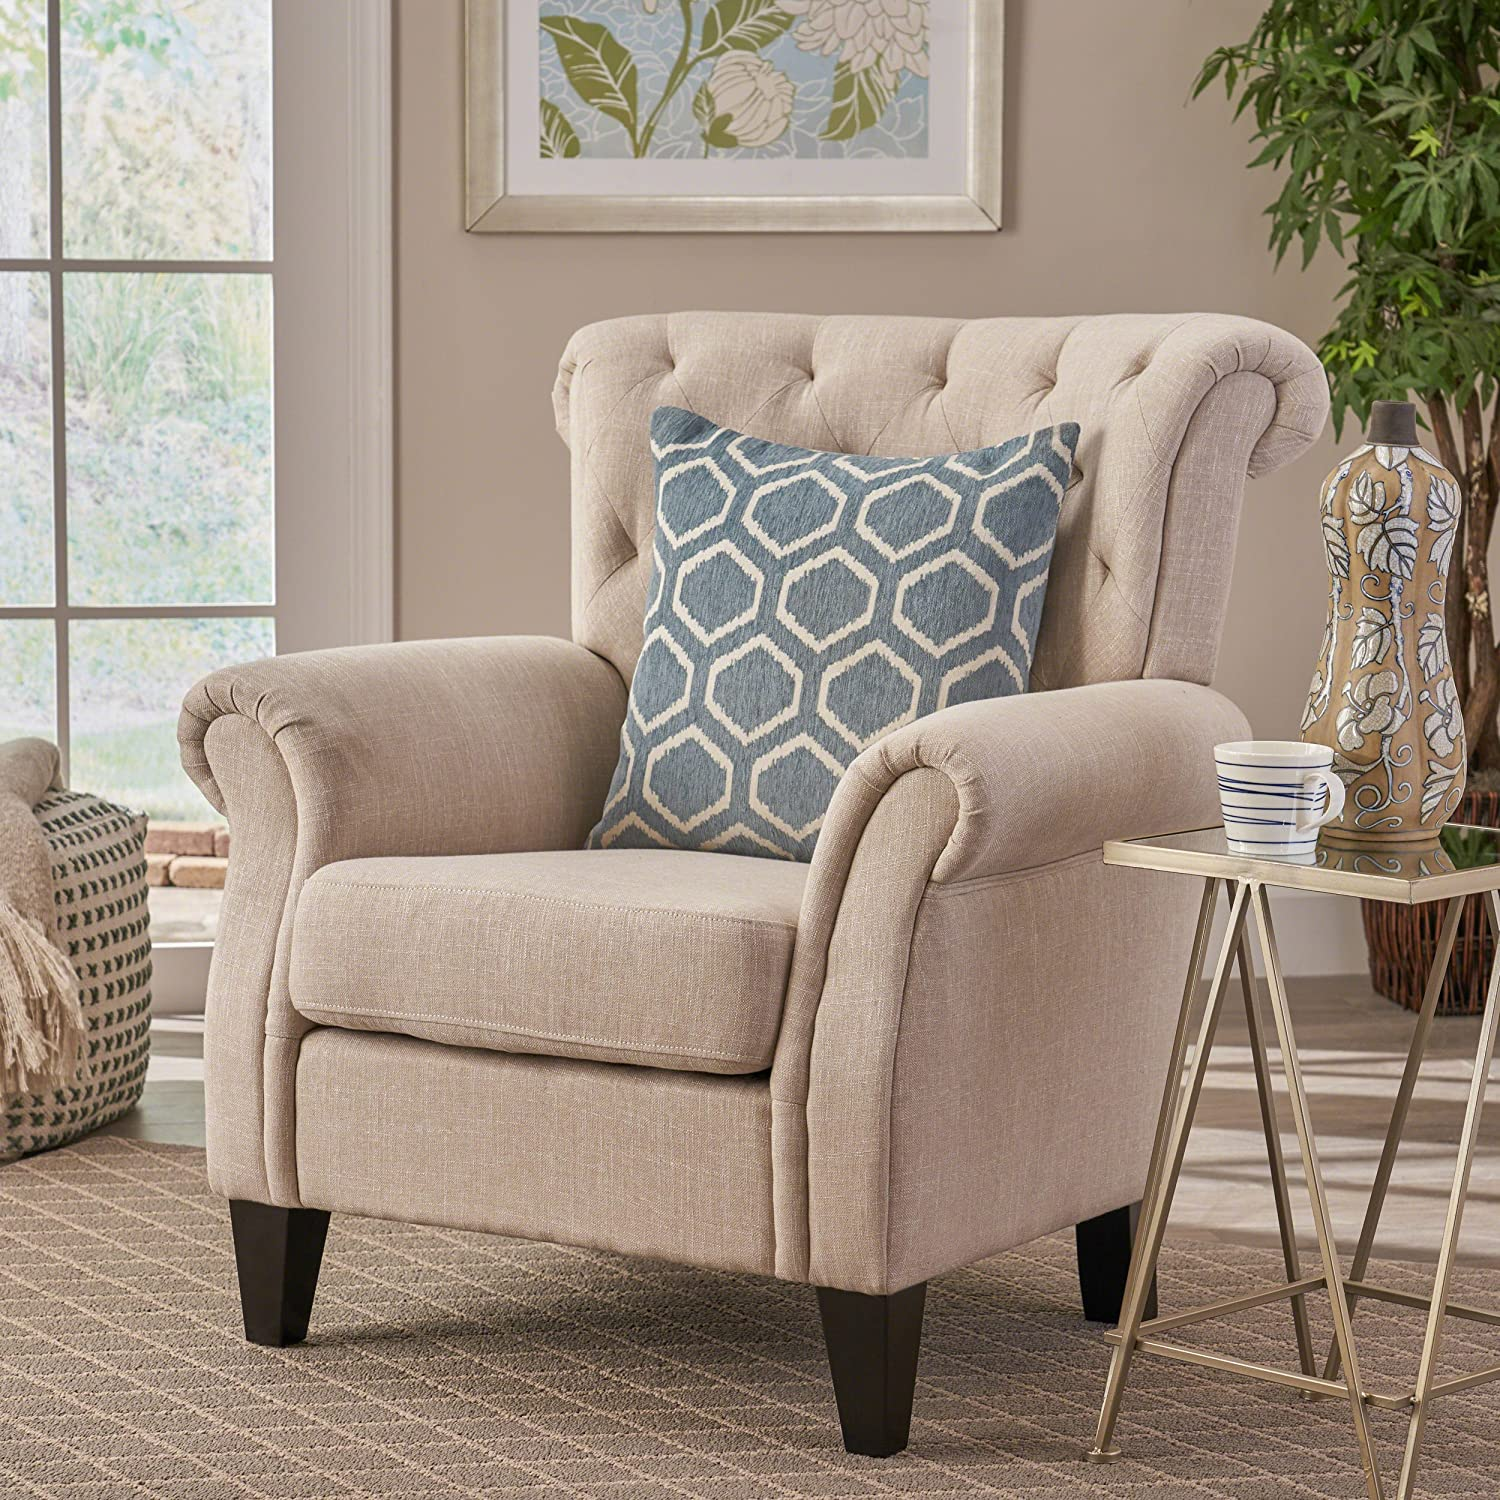 Christopher Knight Home 230016 Greggory Tufted Fabric Club Chair, Light Beige